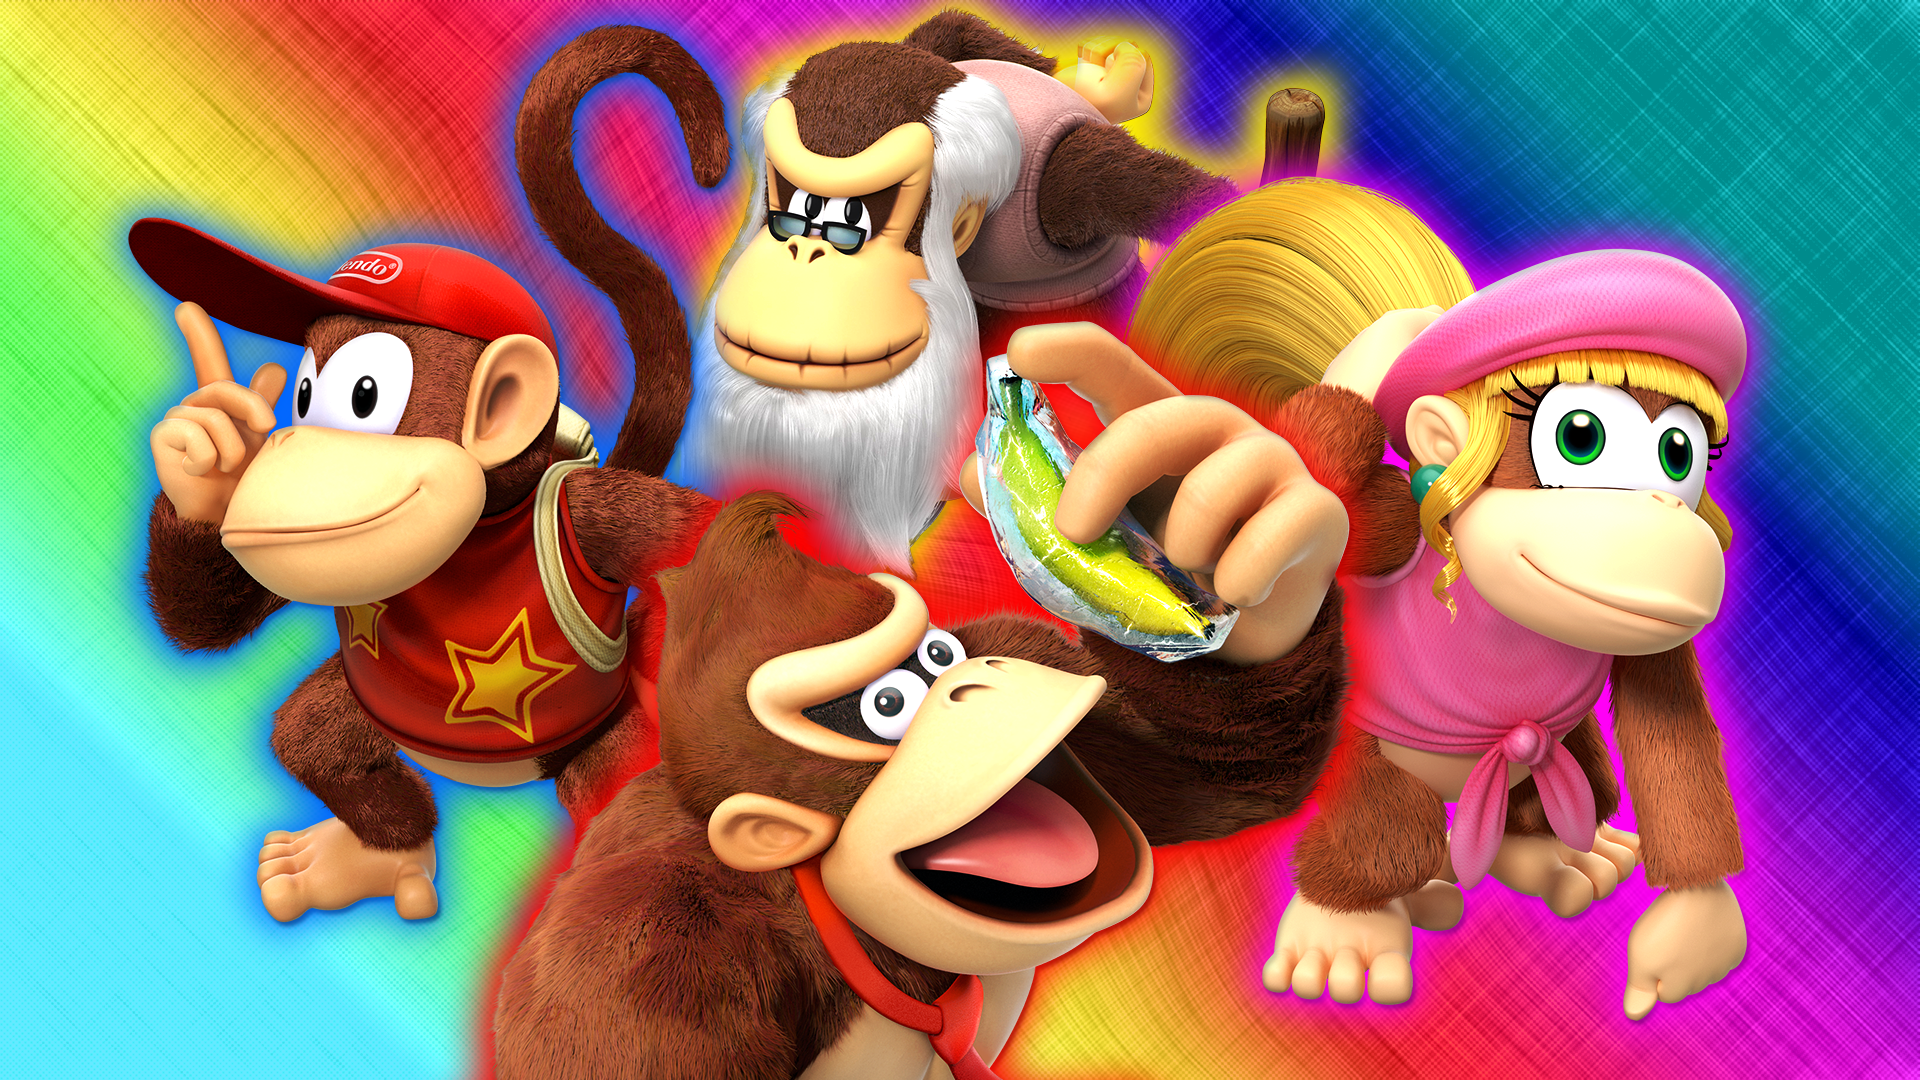 Donkey-Kong-Computer-Desktop-Backgrounds-x-wallpaper-wp3804611